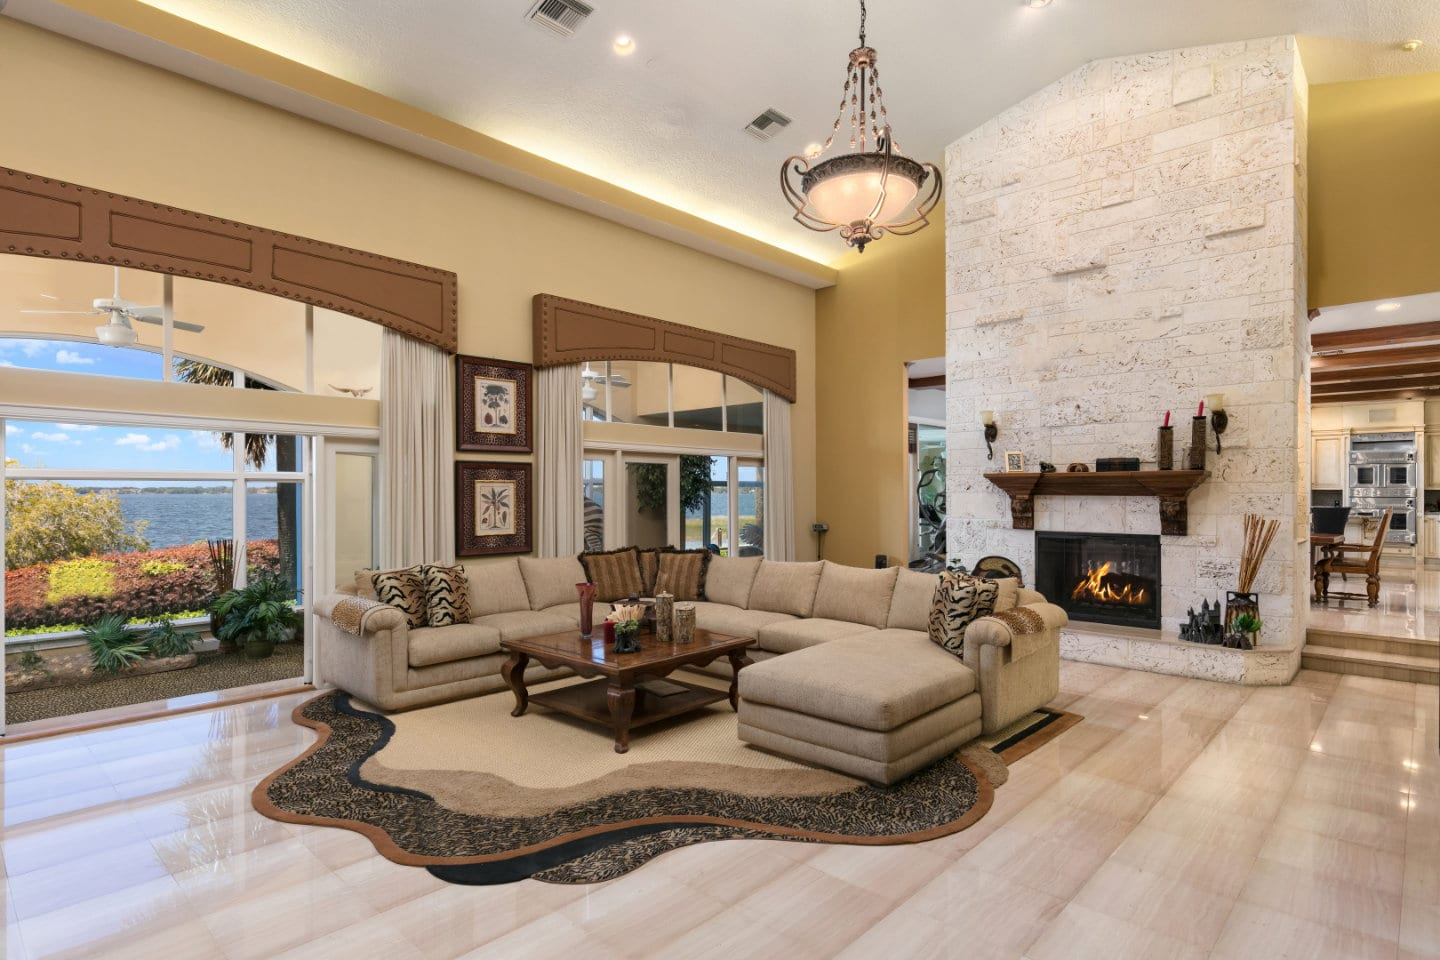 Shaquille O'Neal Selling His Awesome Florida Mansion